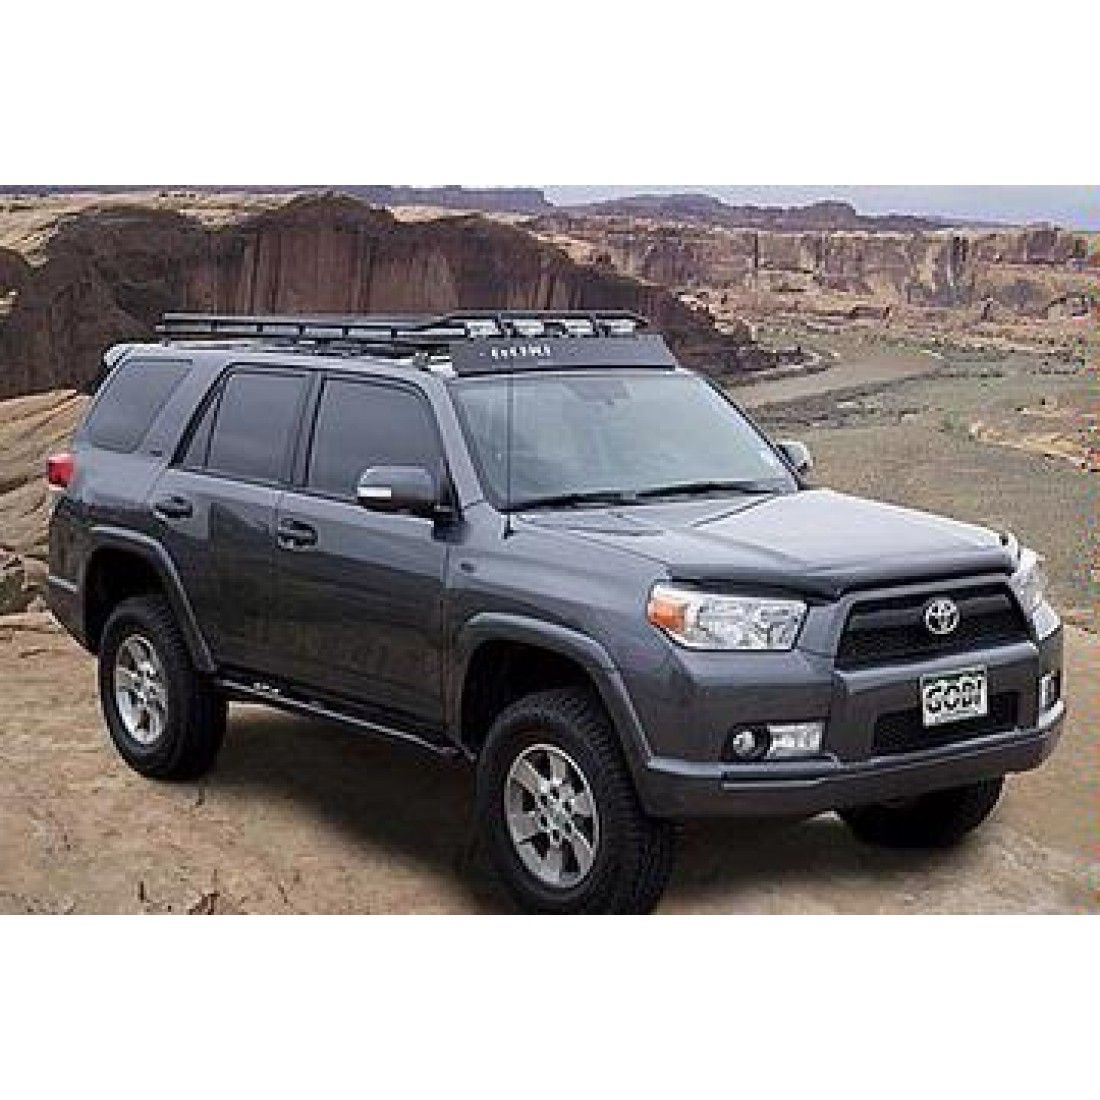 GOBI Toyota 4Runner Roof Rack Toyota 4runner, Roof rack